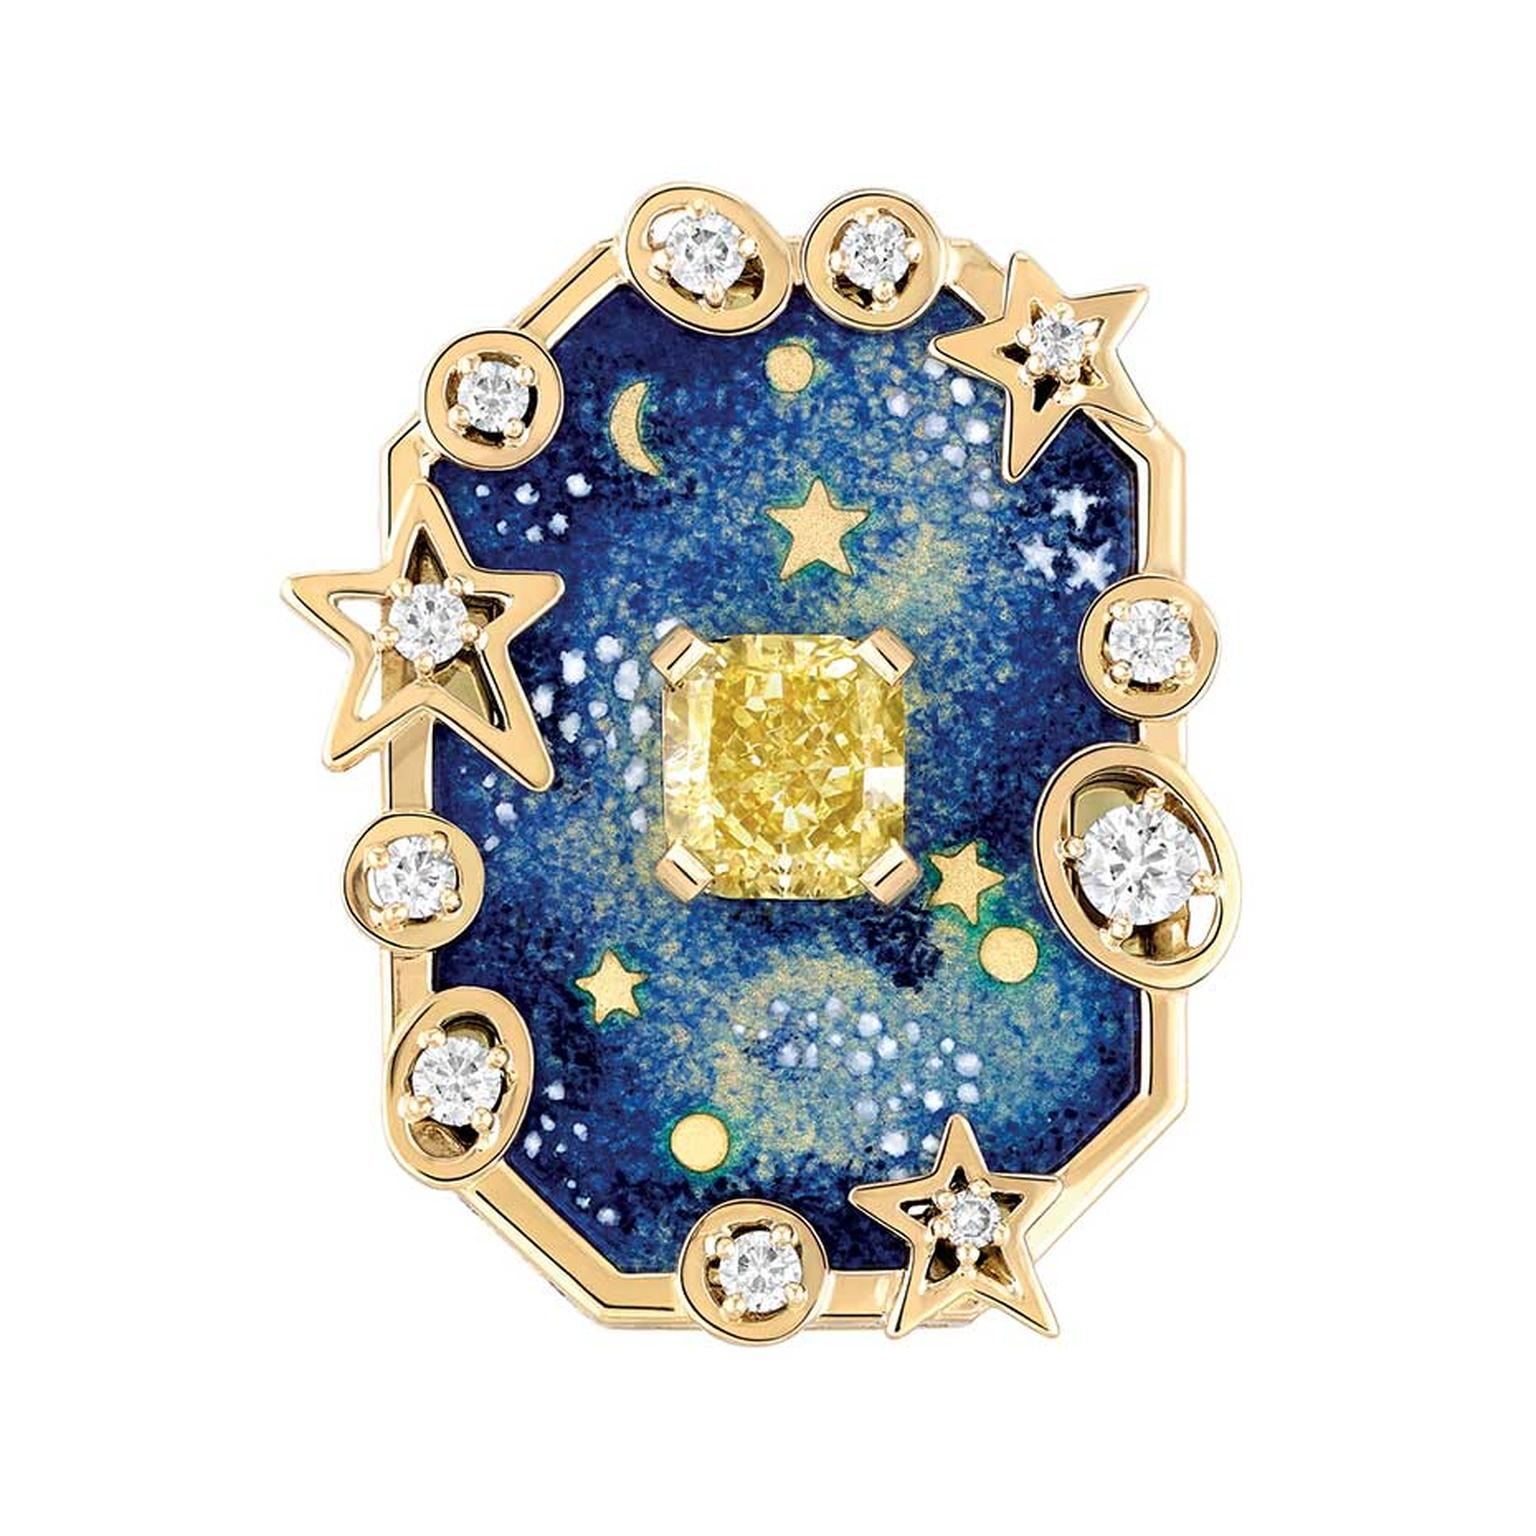 Chanel Vendome Comete high jewellery ring from the Café Society collection, launched at the Biennale in Paris in 2014, decorated with Grand Feu enamel and set with a 1.5ct cushion-cut yellow diamond and brilliant-cut diamonds.